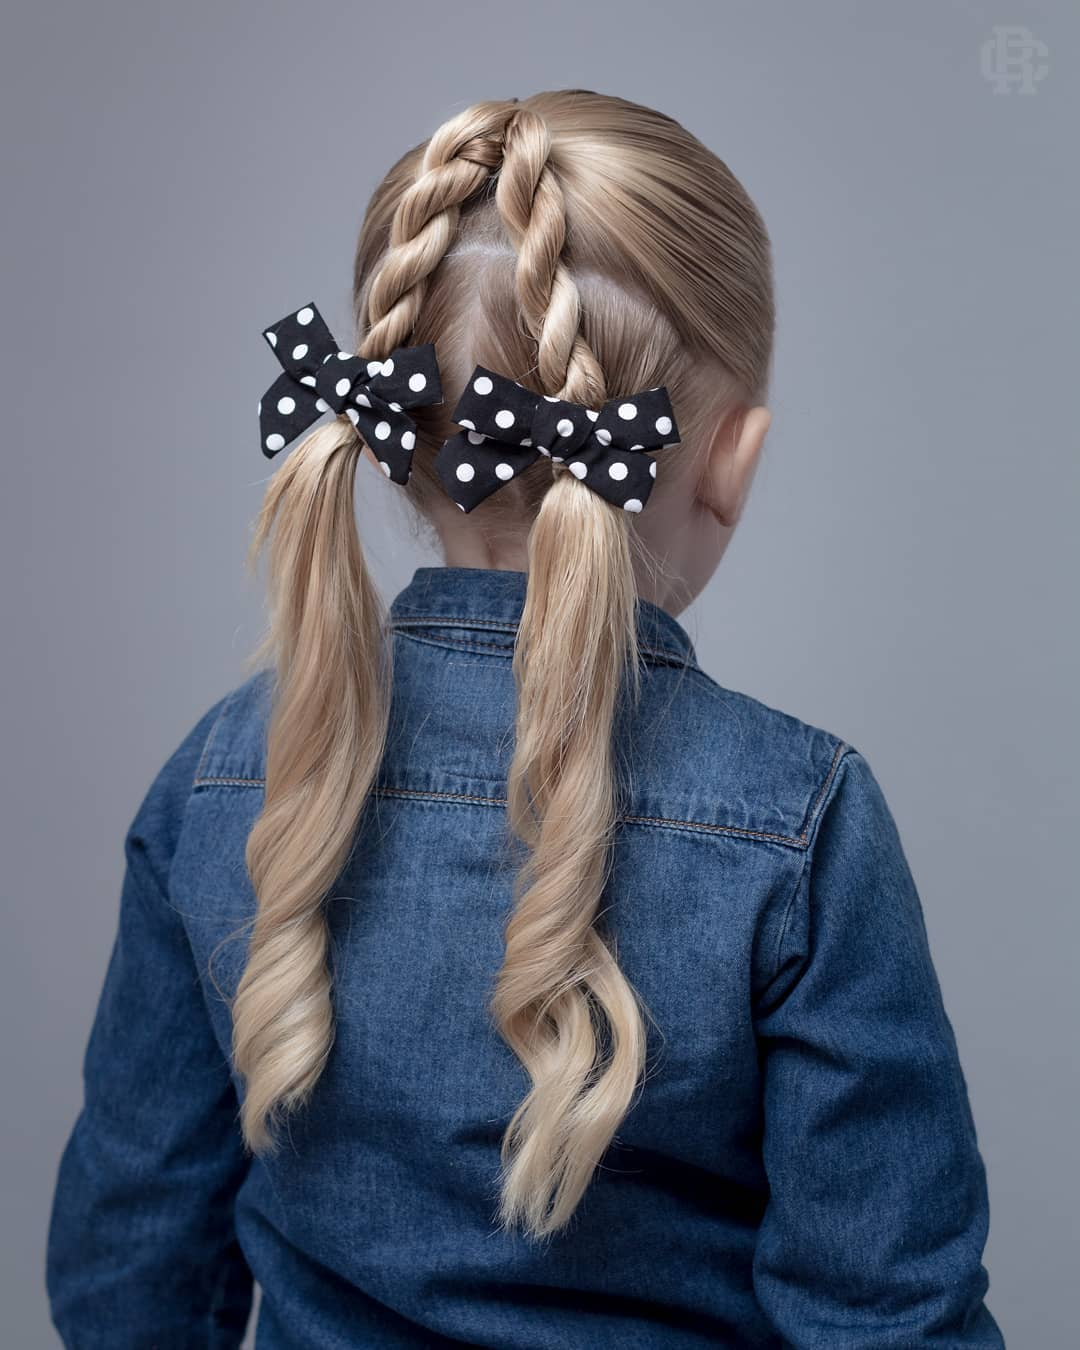 160 Braids Hairstyle Ideas for Little Kids 2019 - Soflyme